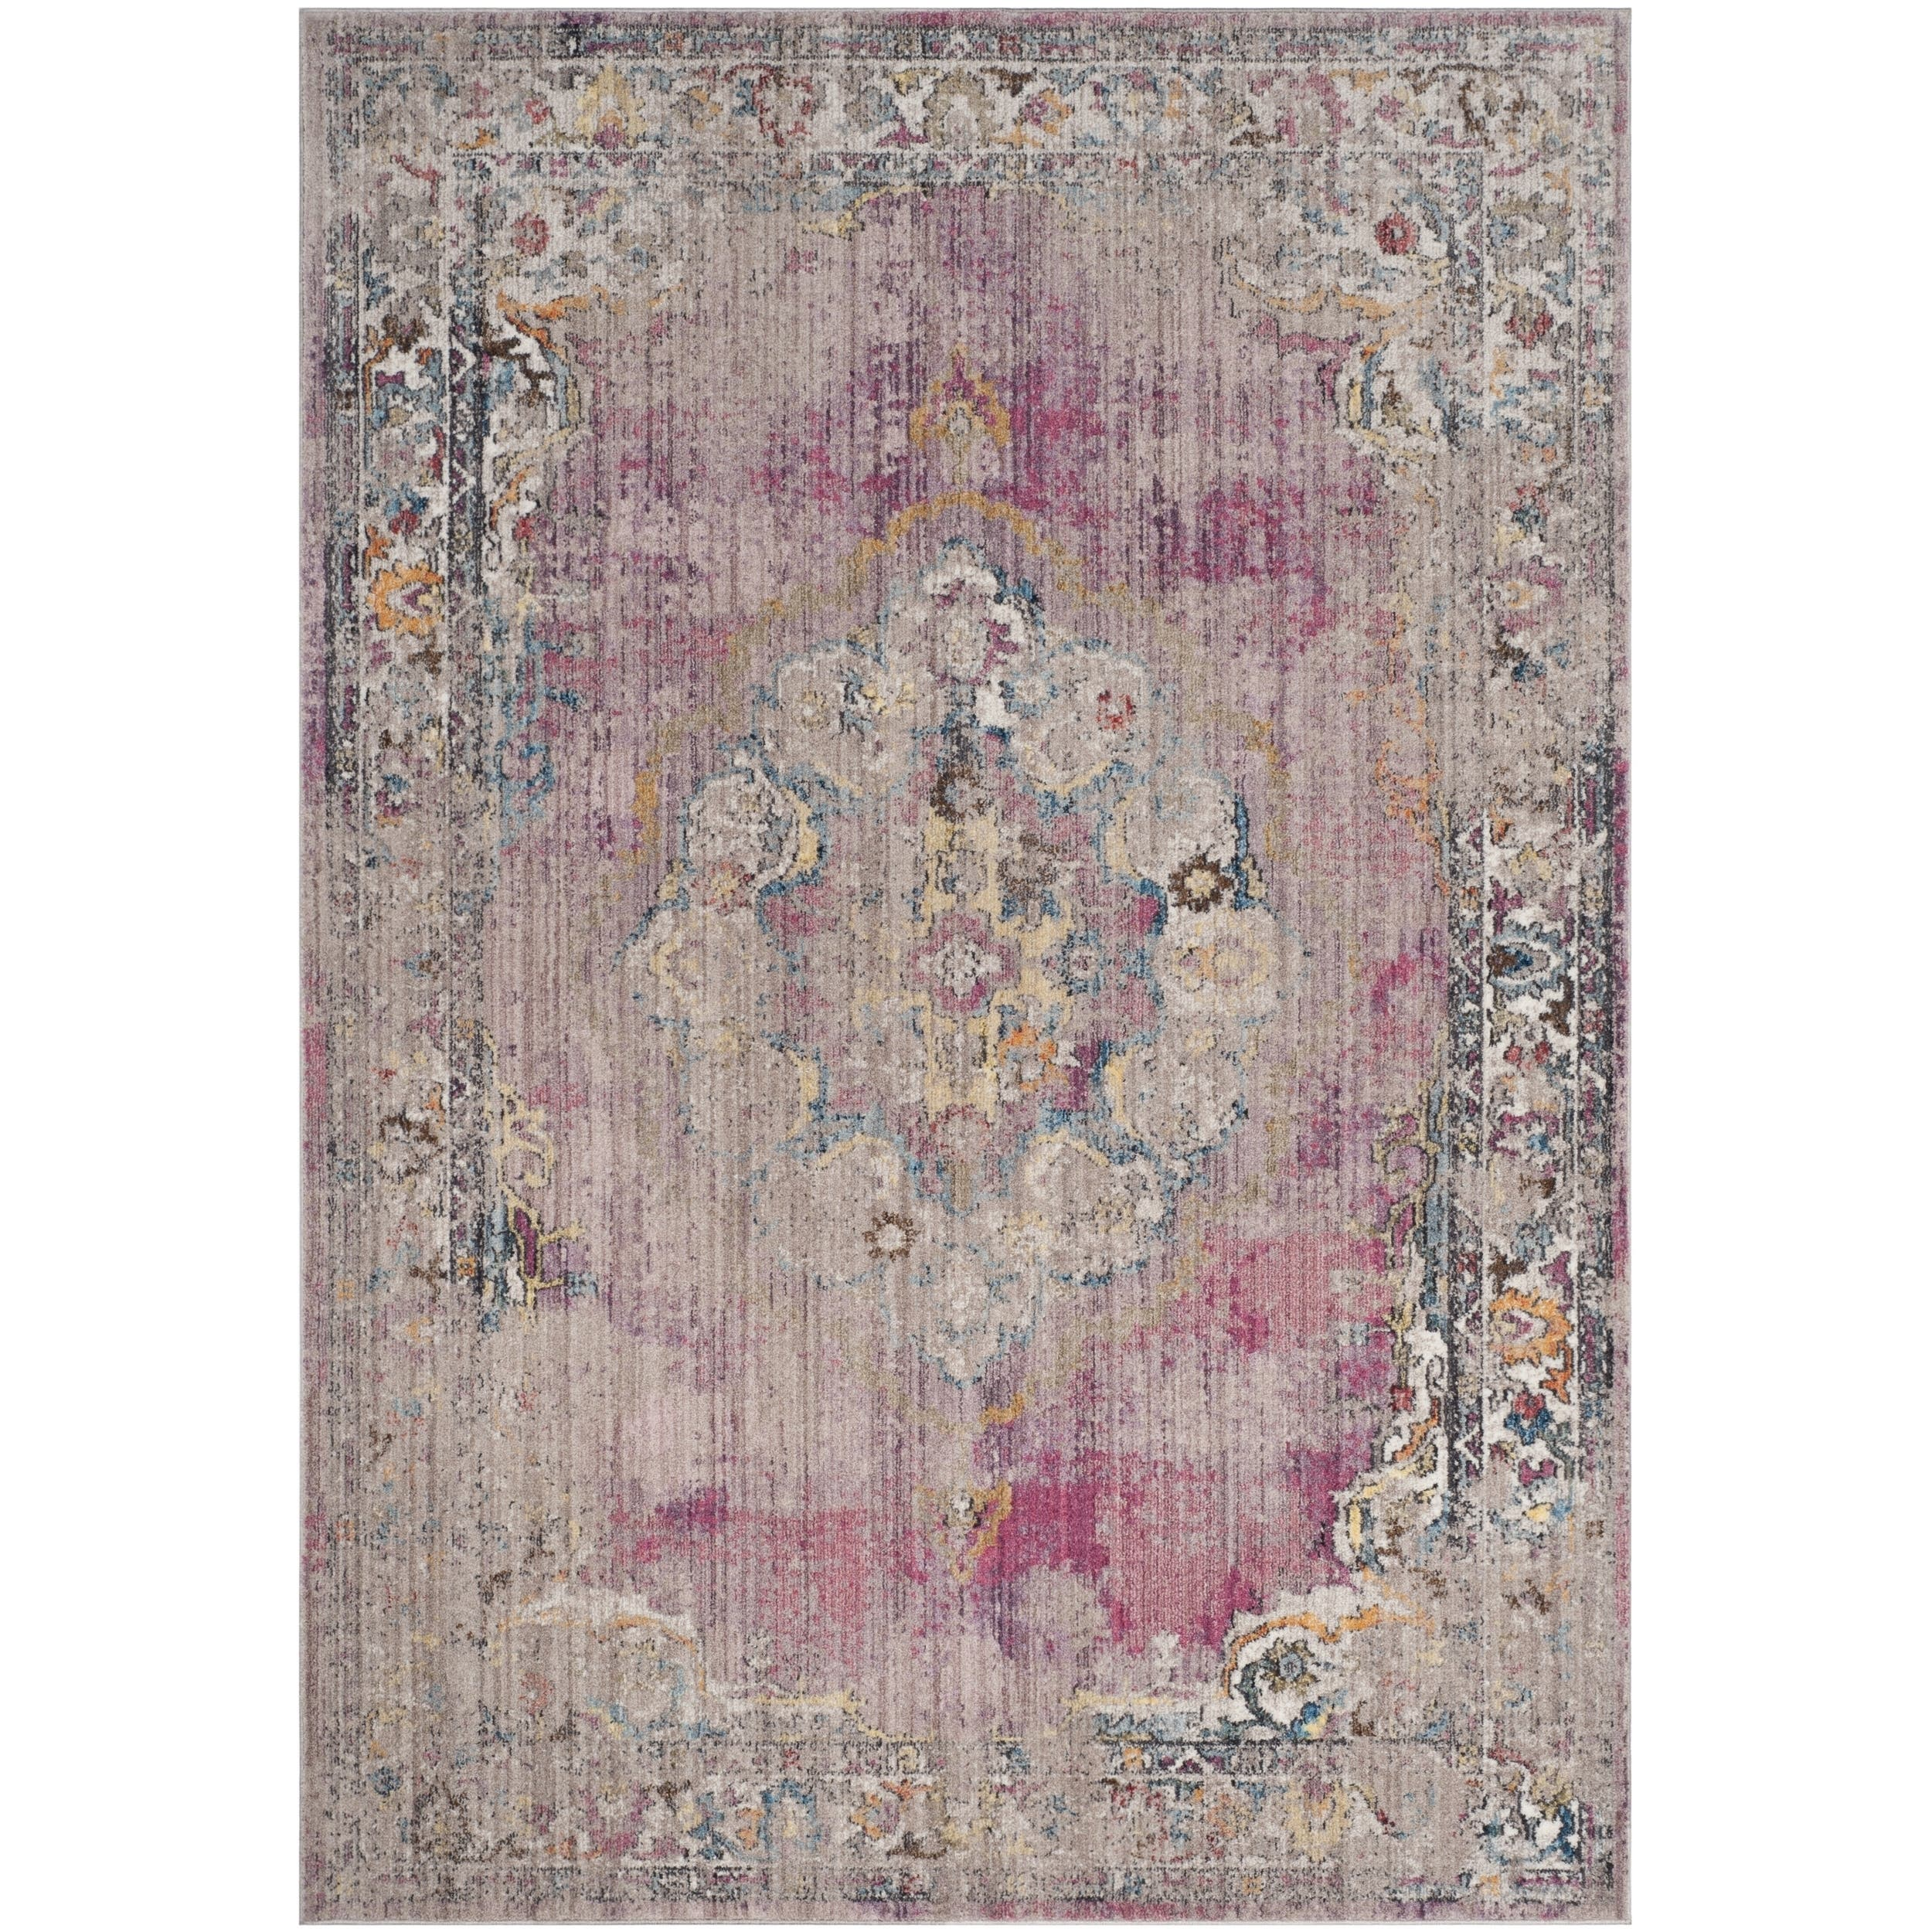 5x8 - 6x9 Rugs For Less